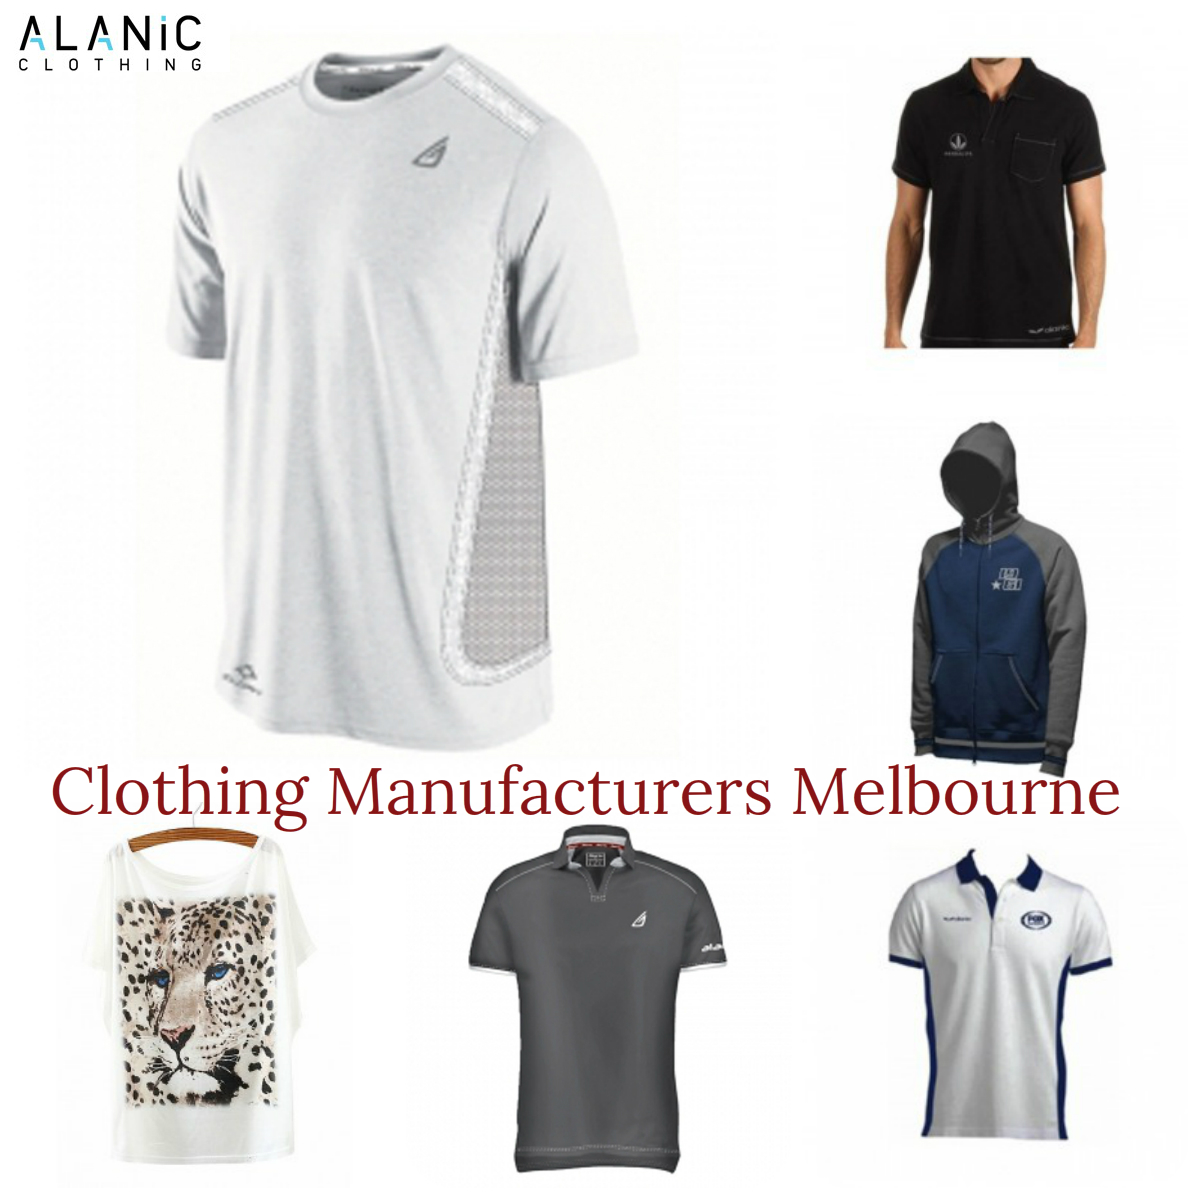 wholesale apparel distributors in Melbourne